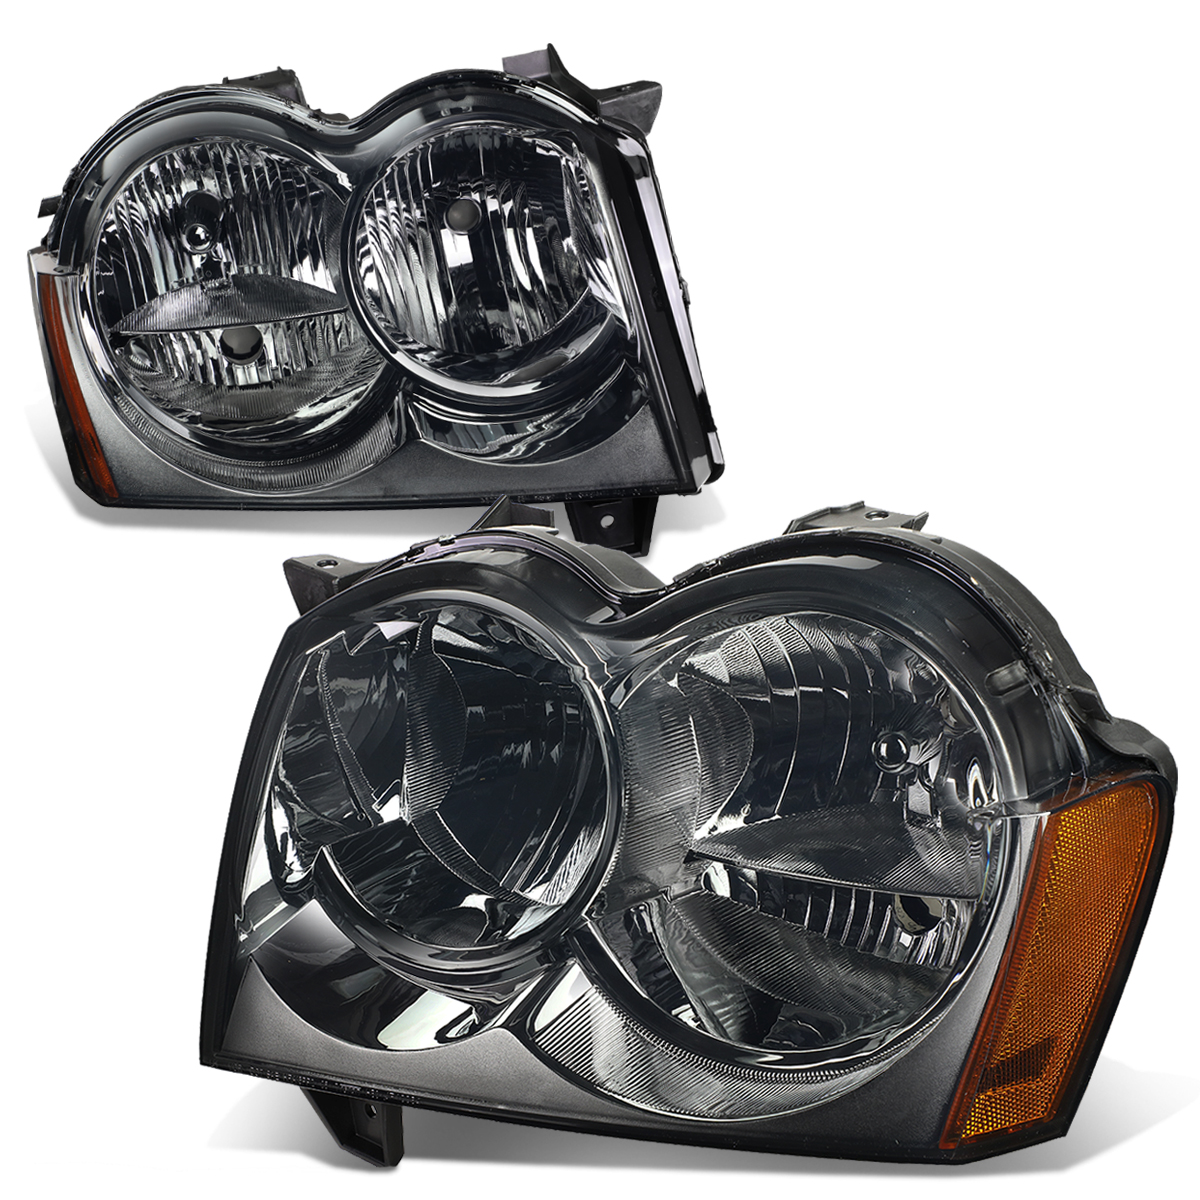 05 07 Jeep Grand Cherokee Headlight Assembly Driver Passenger Side A Map Of Wiring For 2005